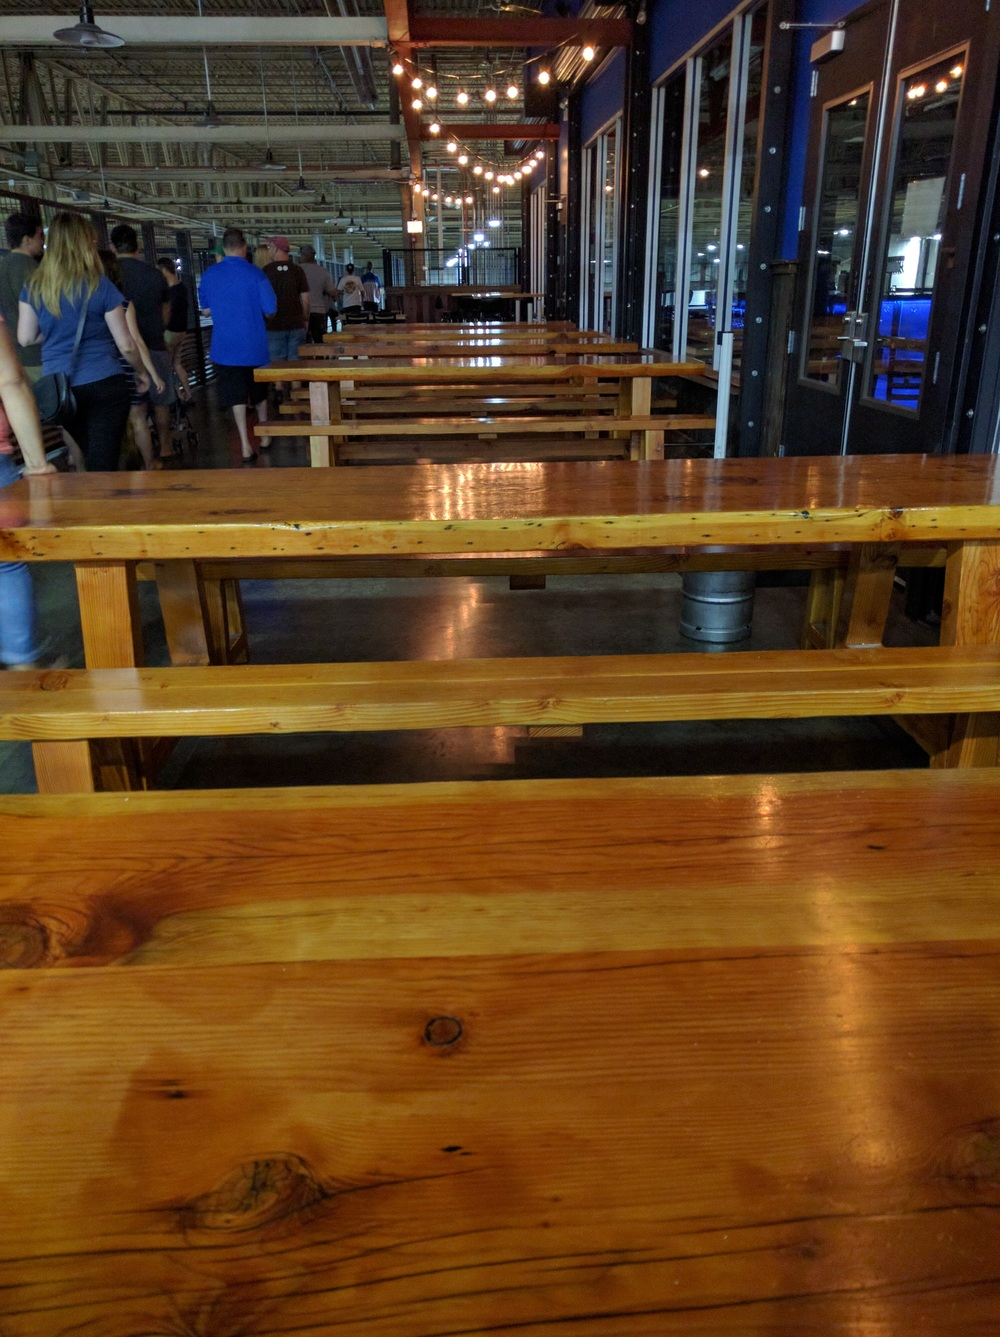 They bought equipment that was too big for their California location and had to cut the roof and make it taller so they re-purposed all the lumber they took off and made it into tables for the Chicago location